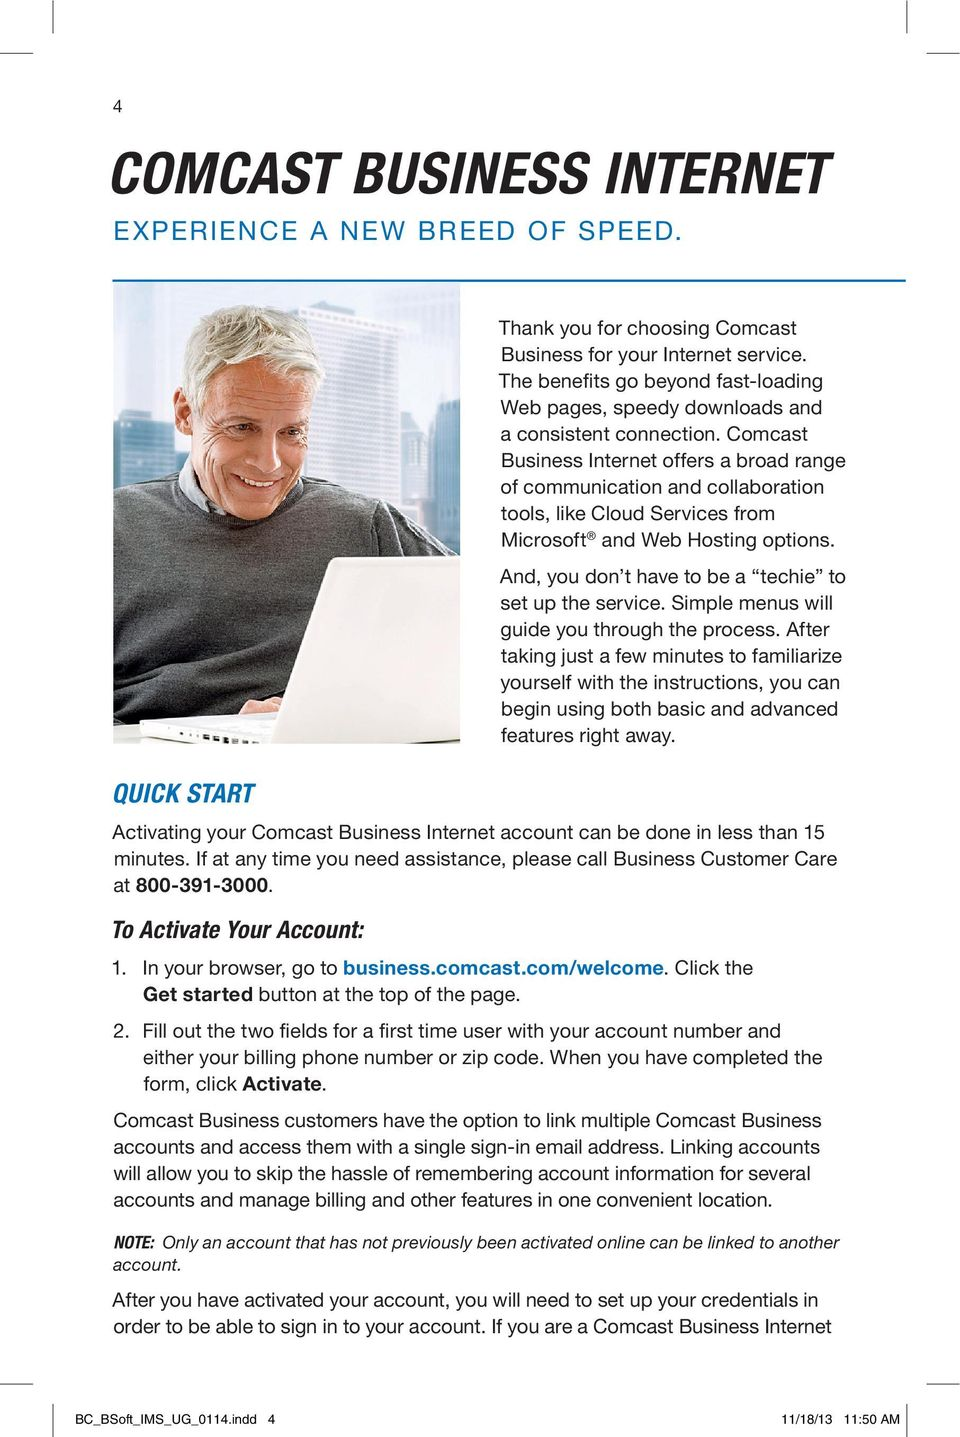 Comcast Business Internet offers a broad range of communication and collaboration tools, like Cloud Services from Microsoft and Web Hosting options.